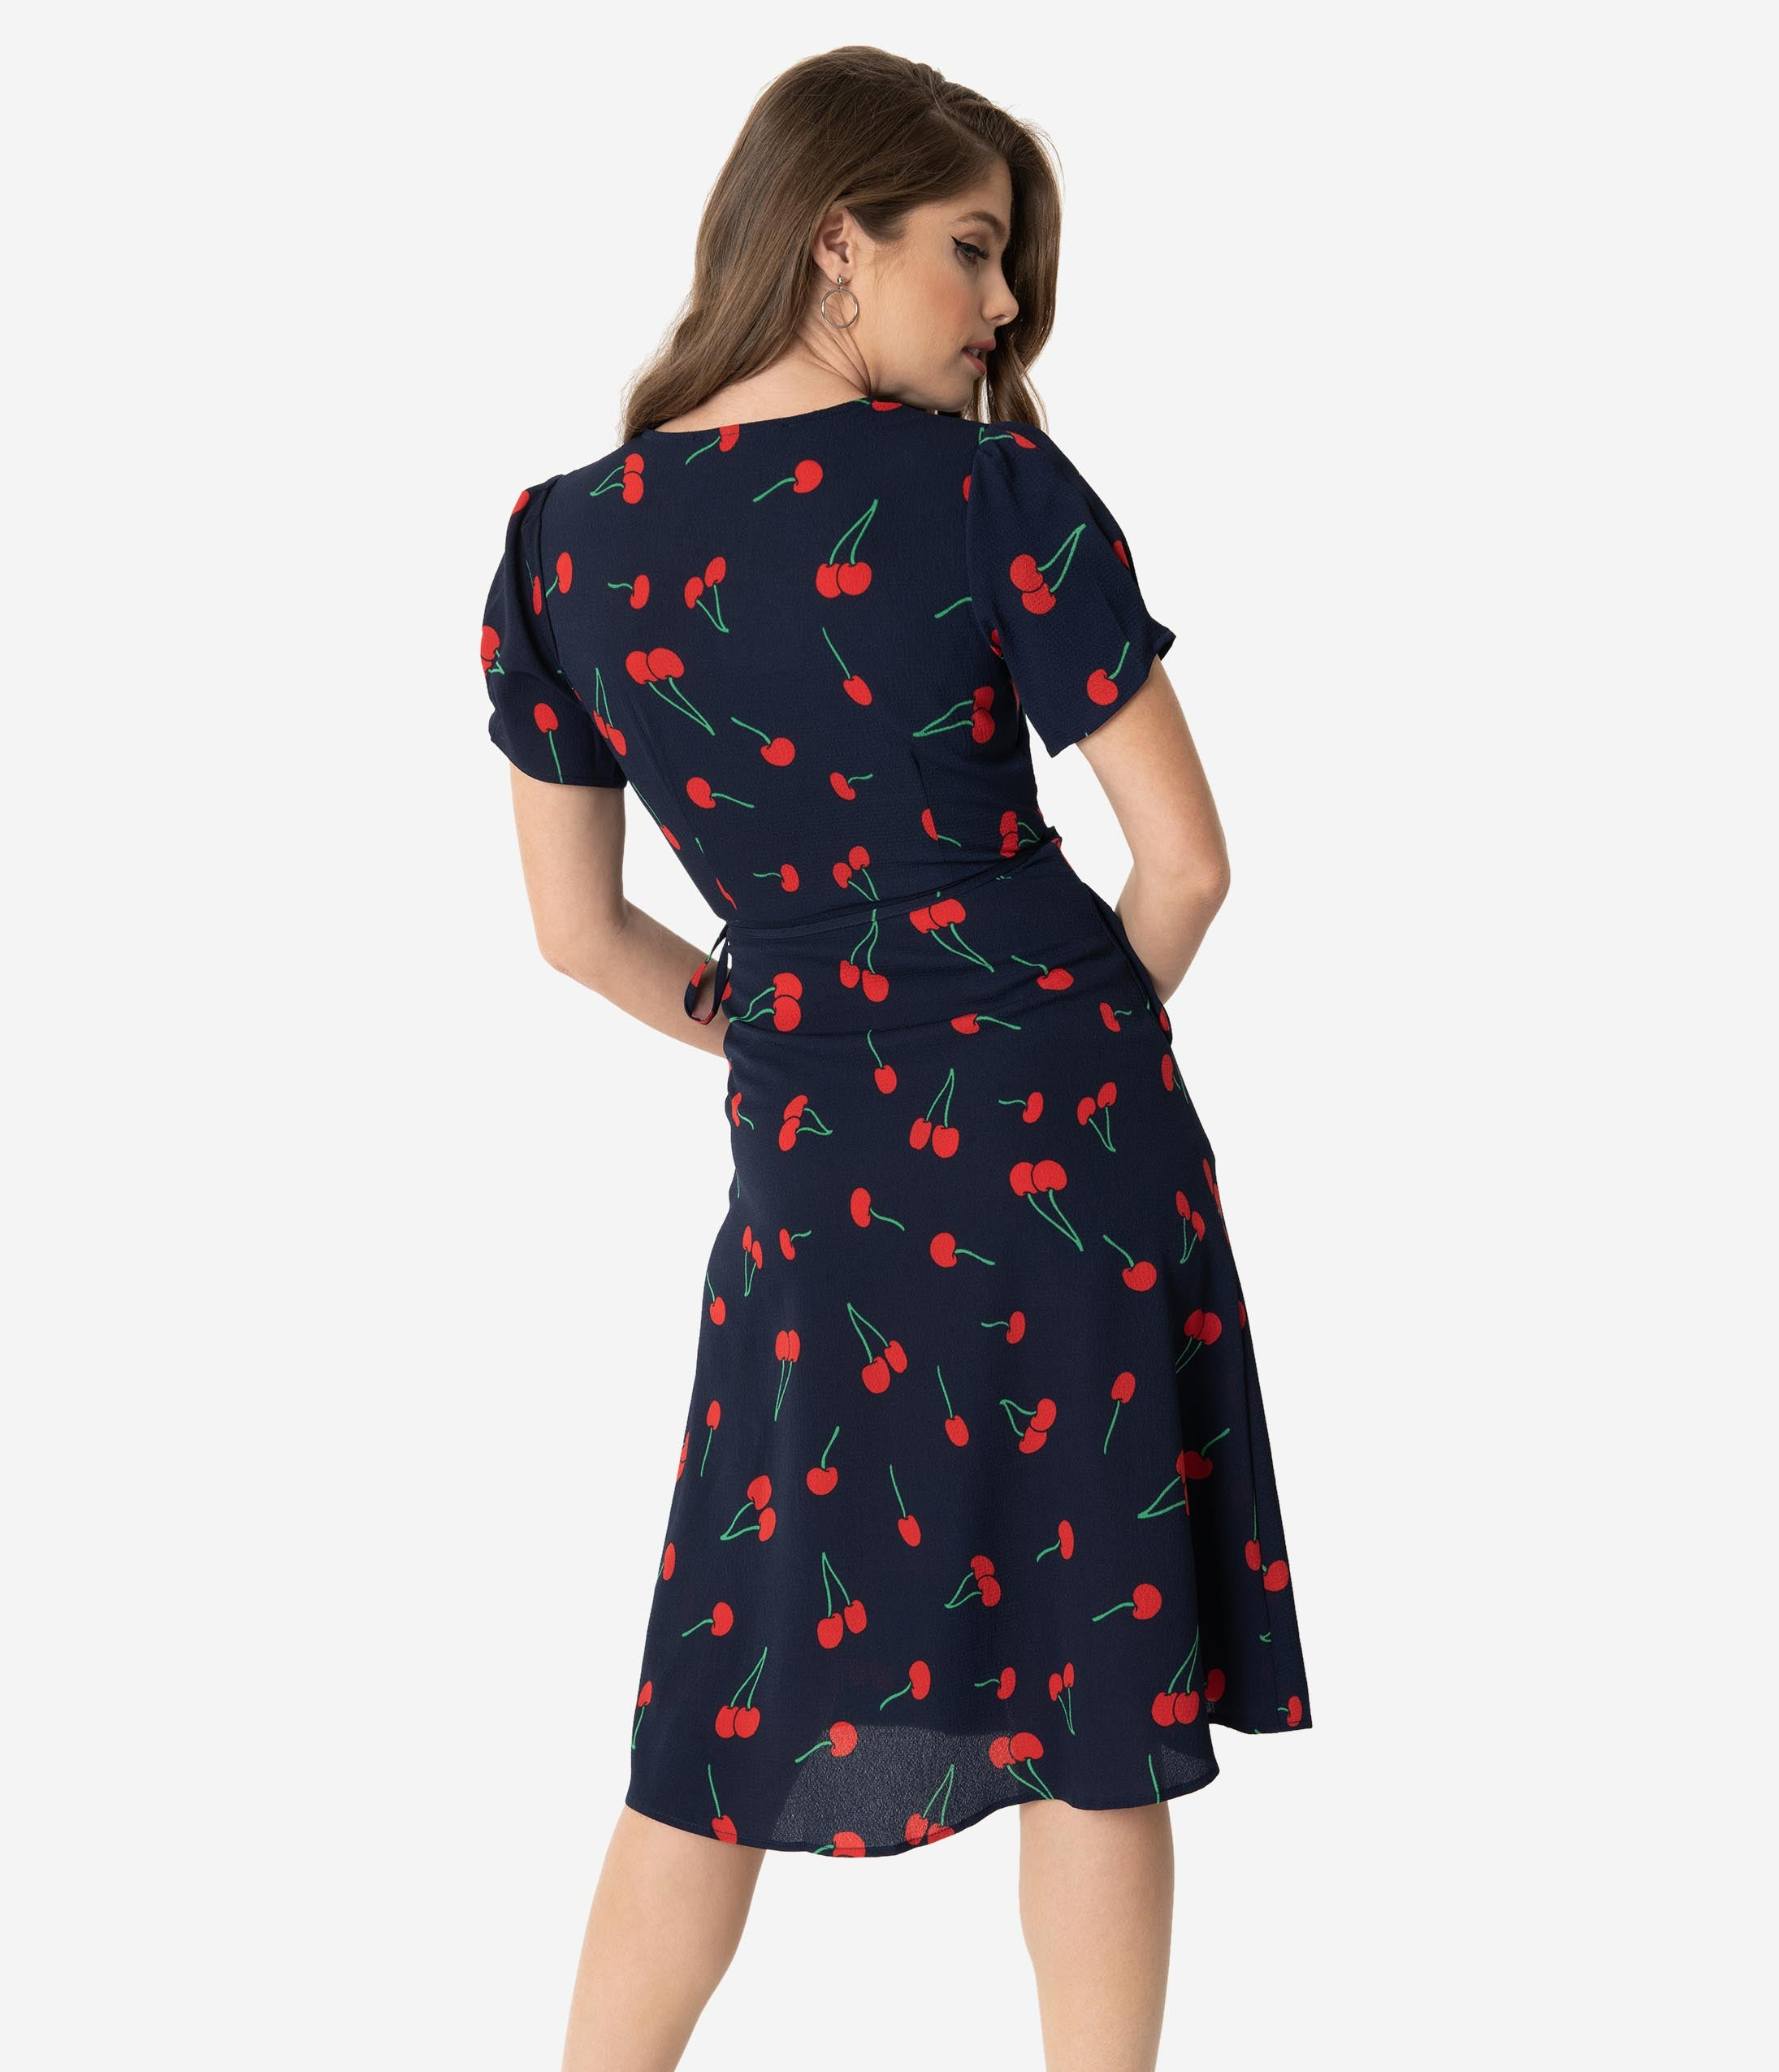 ffd9f749d00c1 Retro Style Navy & Red Cherry Print Short Sleeve Wrap Dress